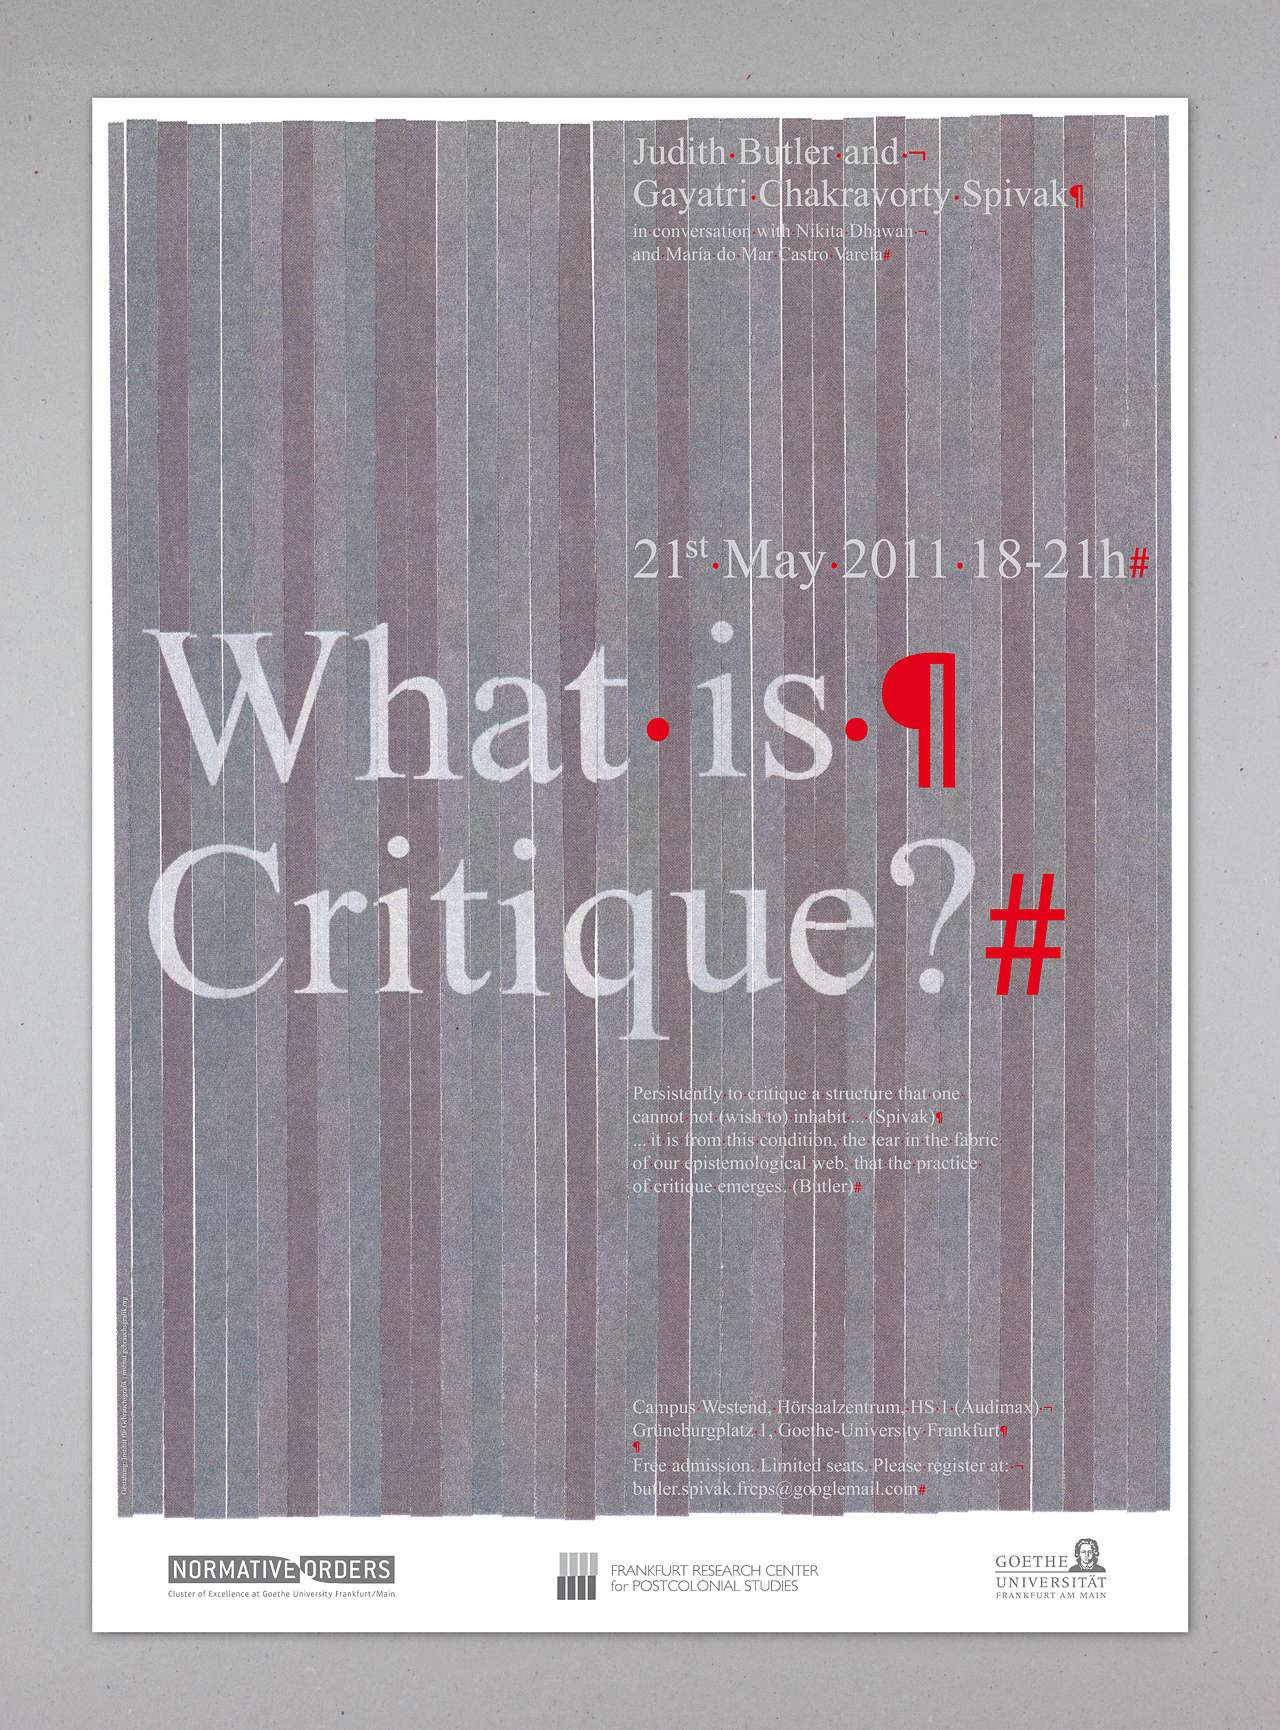 What is Critique?